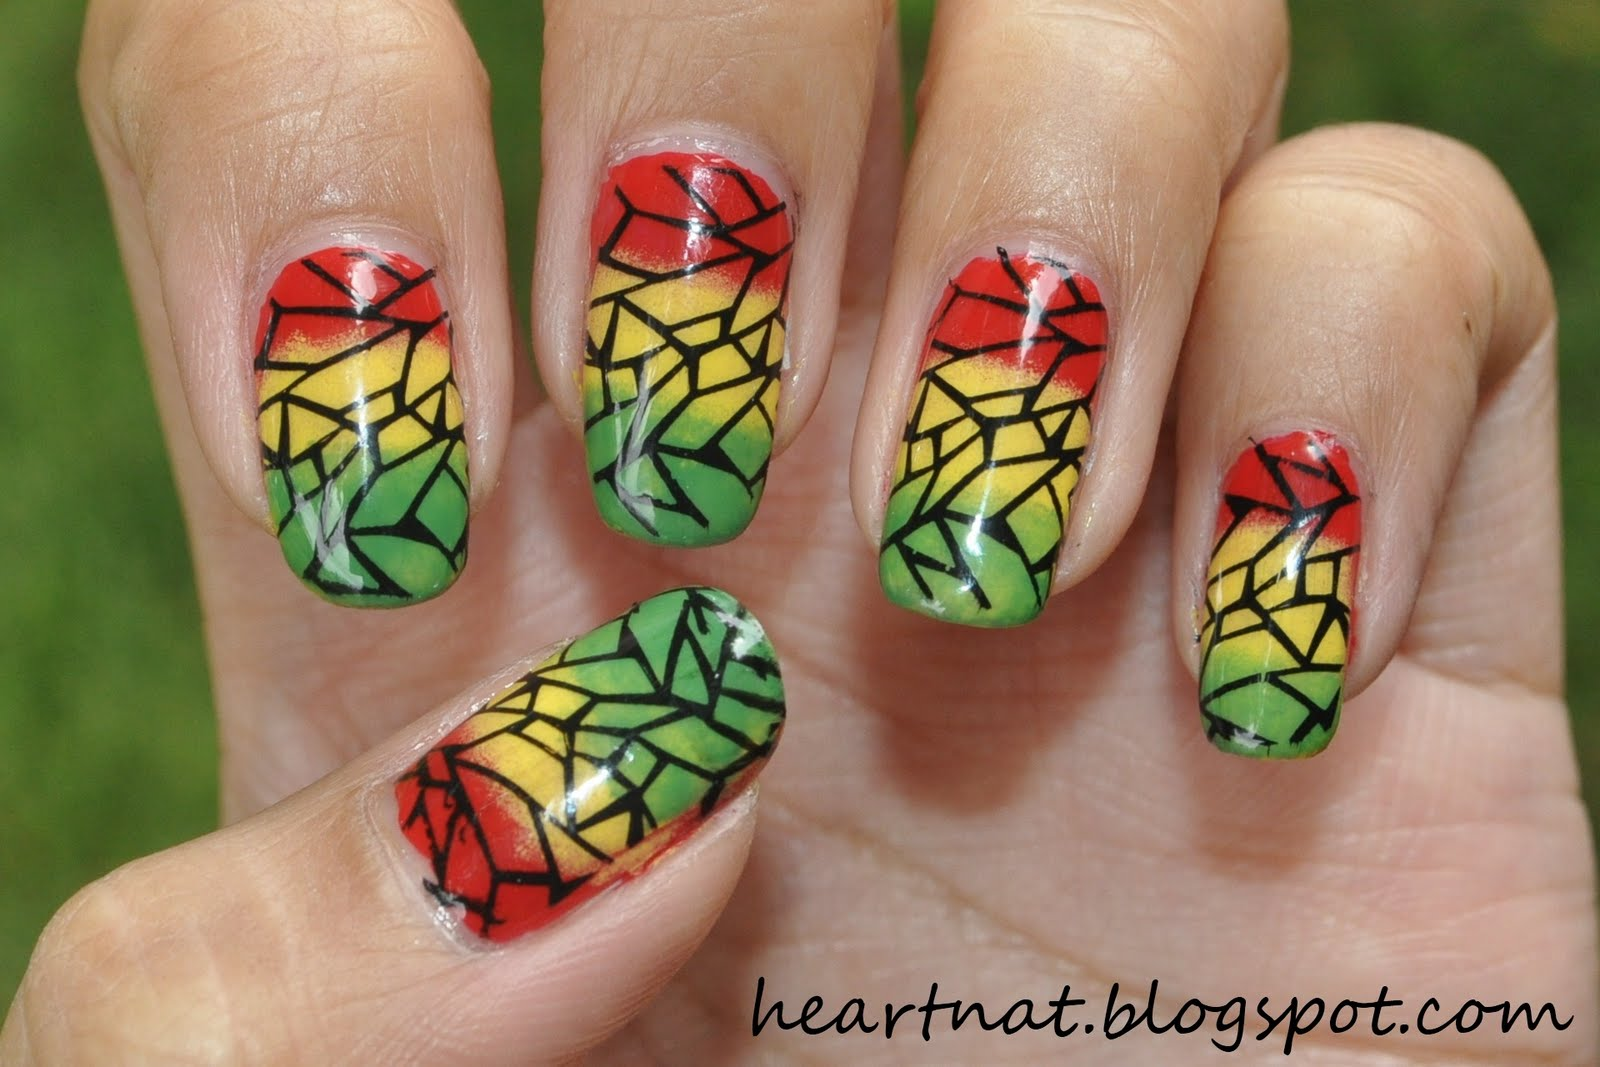 Reggae nail art choice image nail art and nail design ideas french nail art reggae inspired nails dont mind my thumb i forgot to sponge all the prinsesfo Choice Image